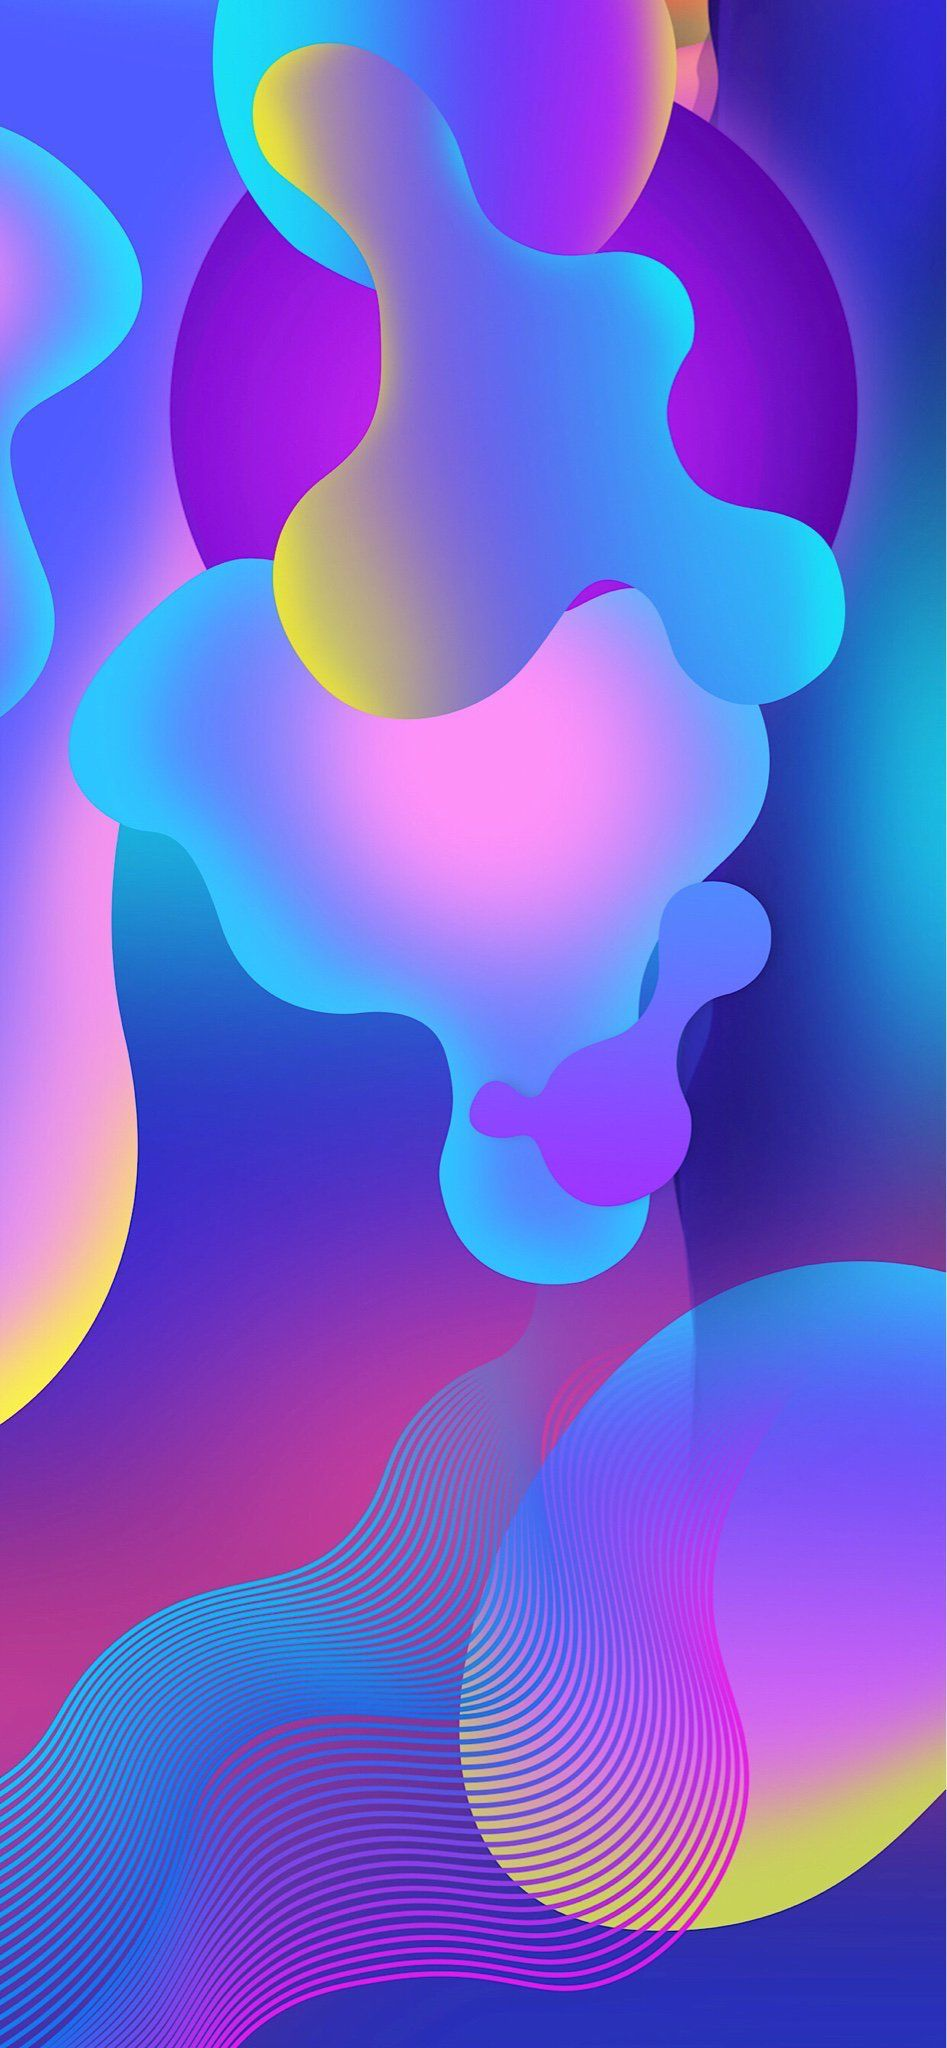 Iphone Xs Max Wallpaper Solid Blurred Colors In 2019 Iphone Iphone Wallpaper Smartphone Wallpaper Pretty Wallpapers